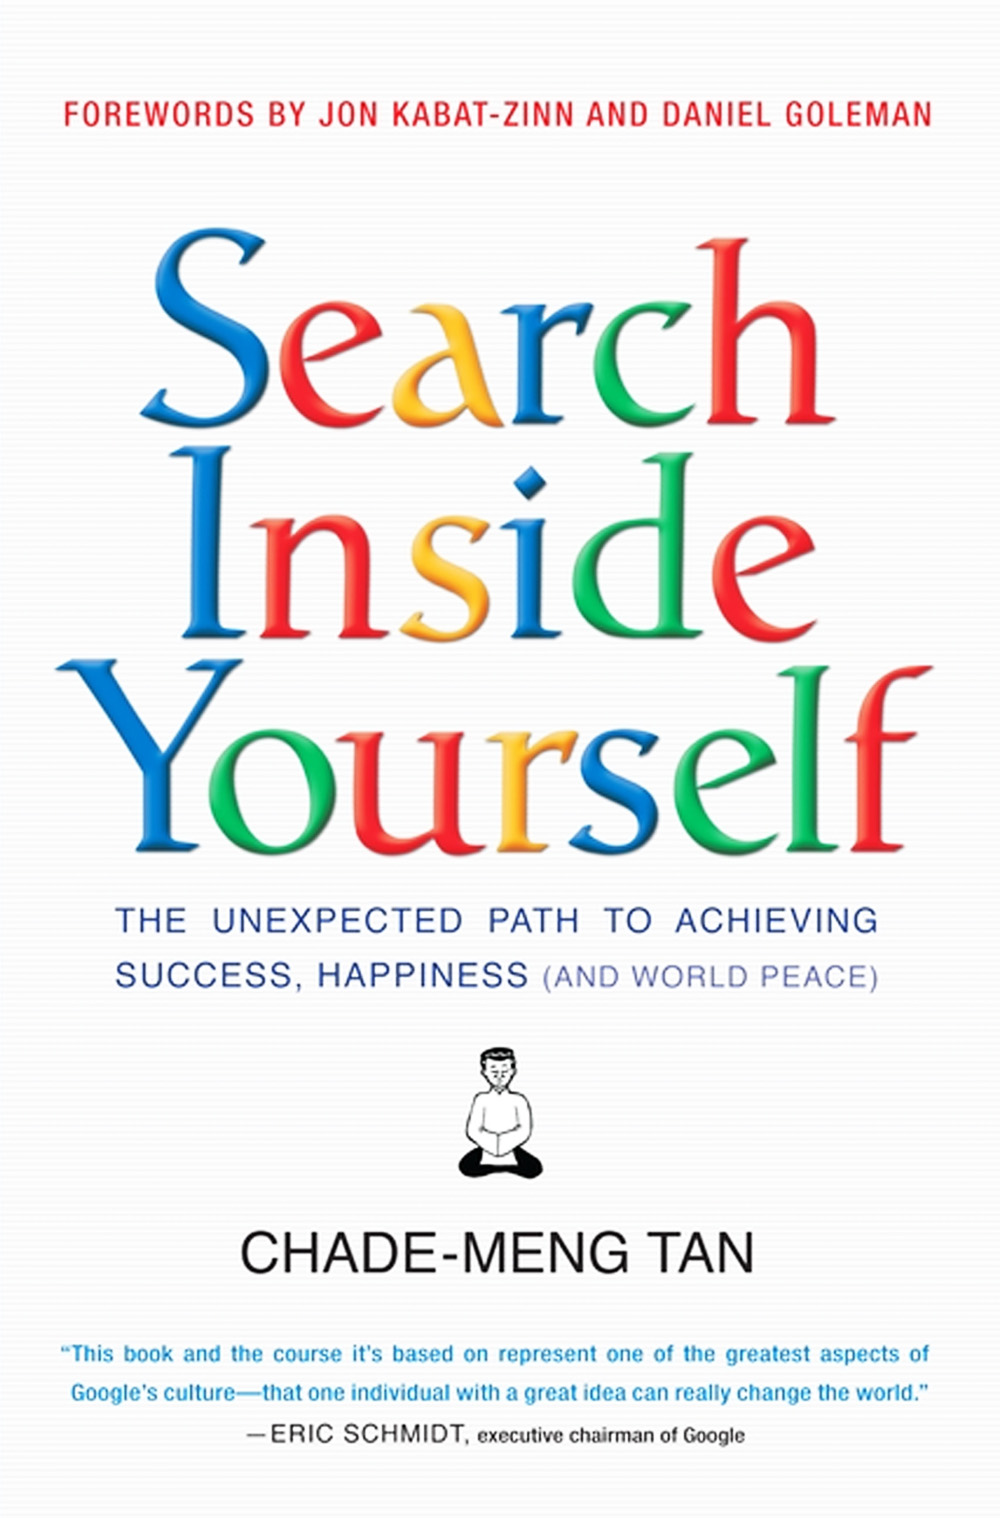 From Google to the world: The (un)expected path to happiness